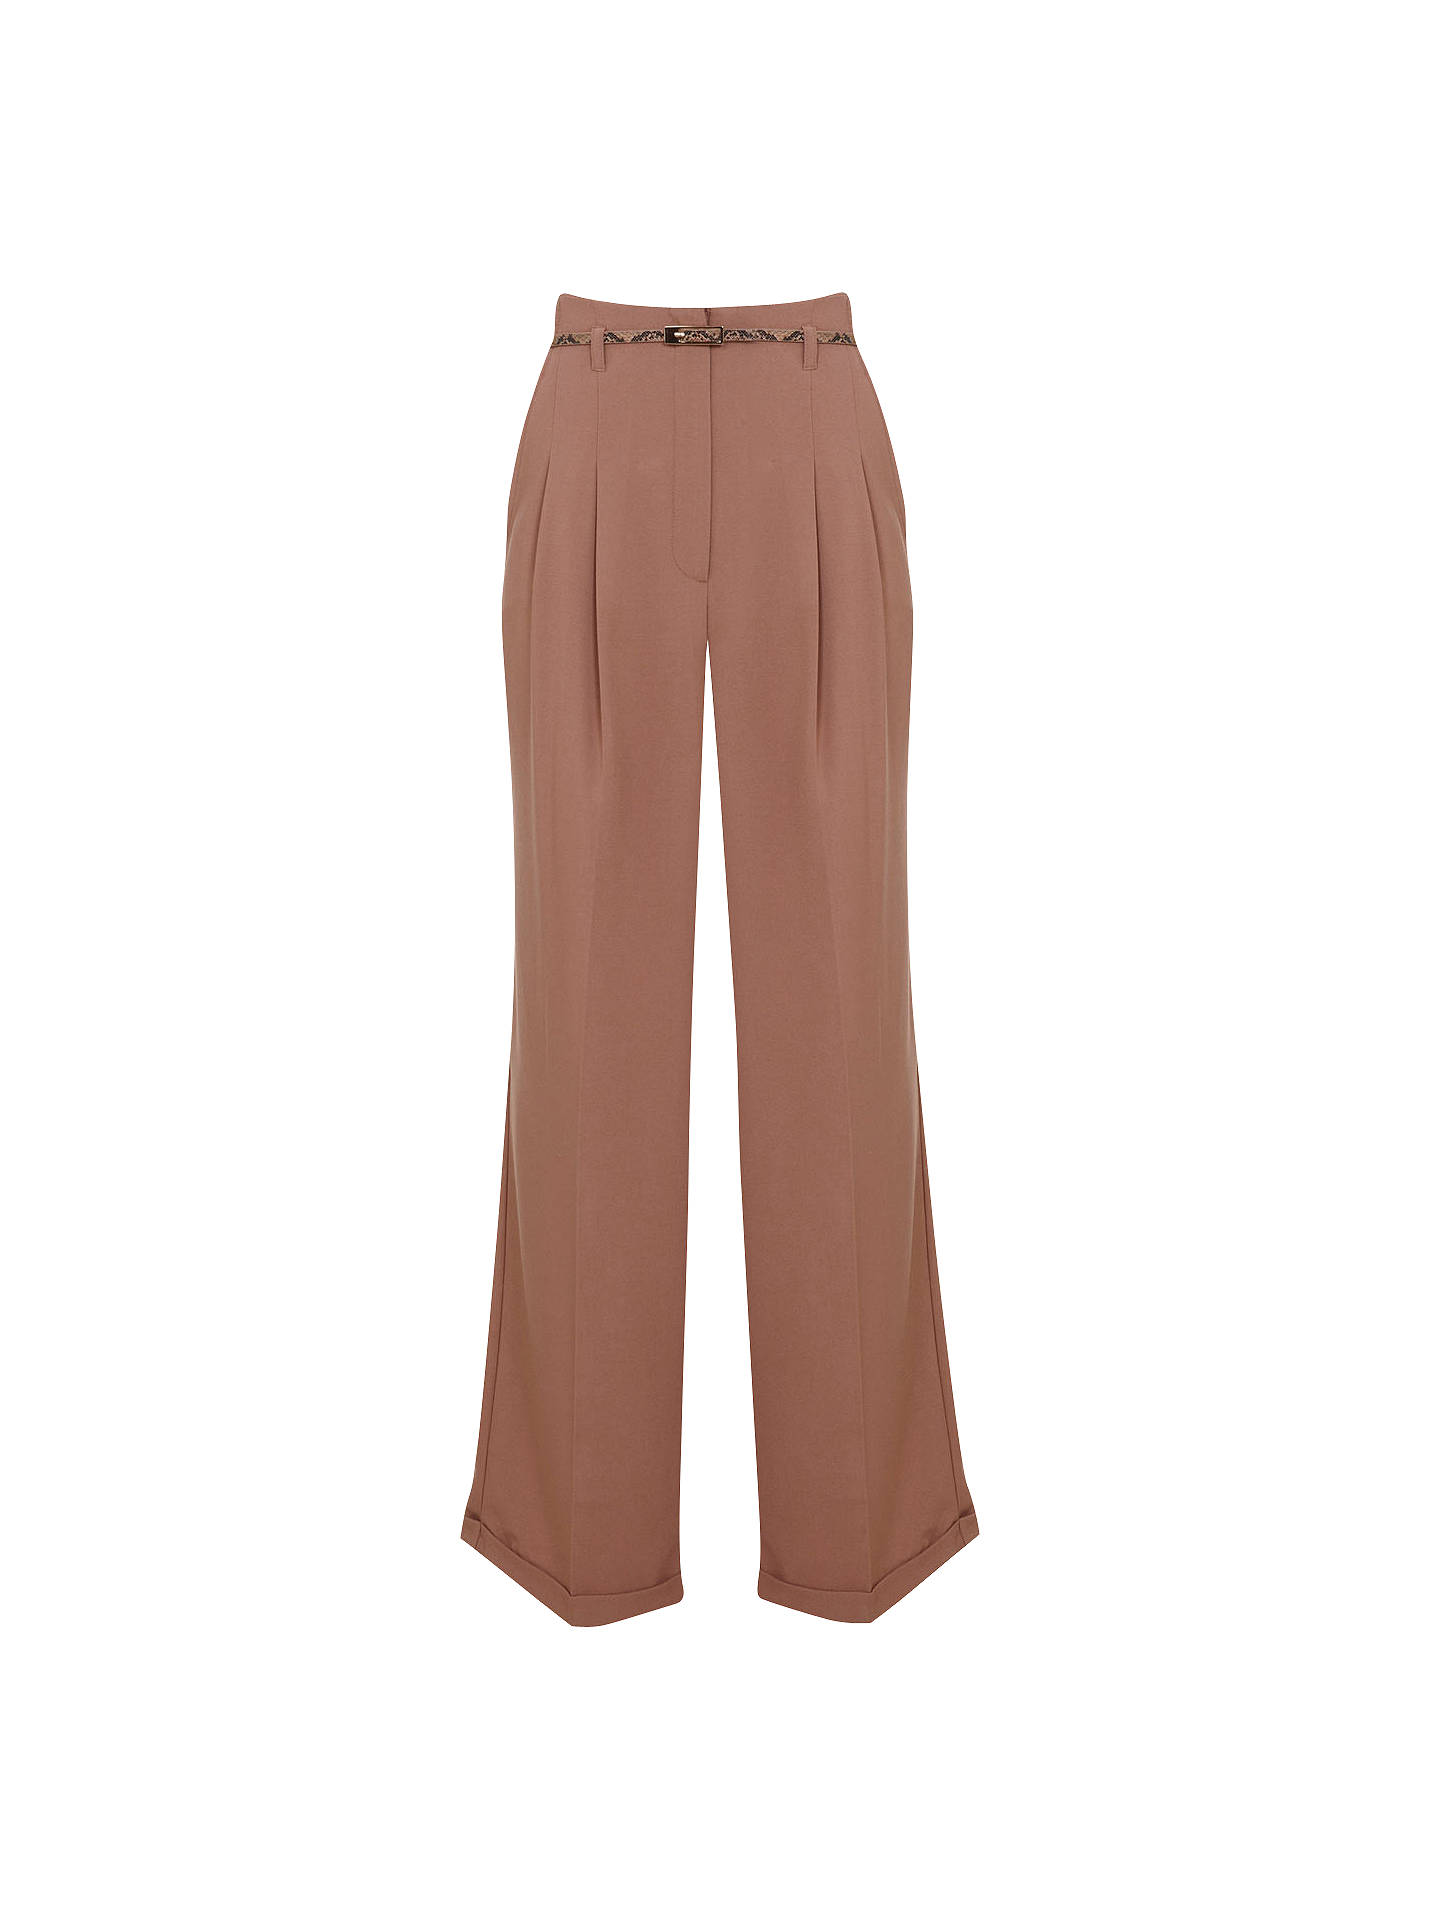 29624fb7a444f Buy Miss Selfridge High Waist Wide Leg Trousers